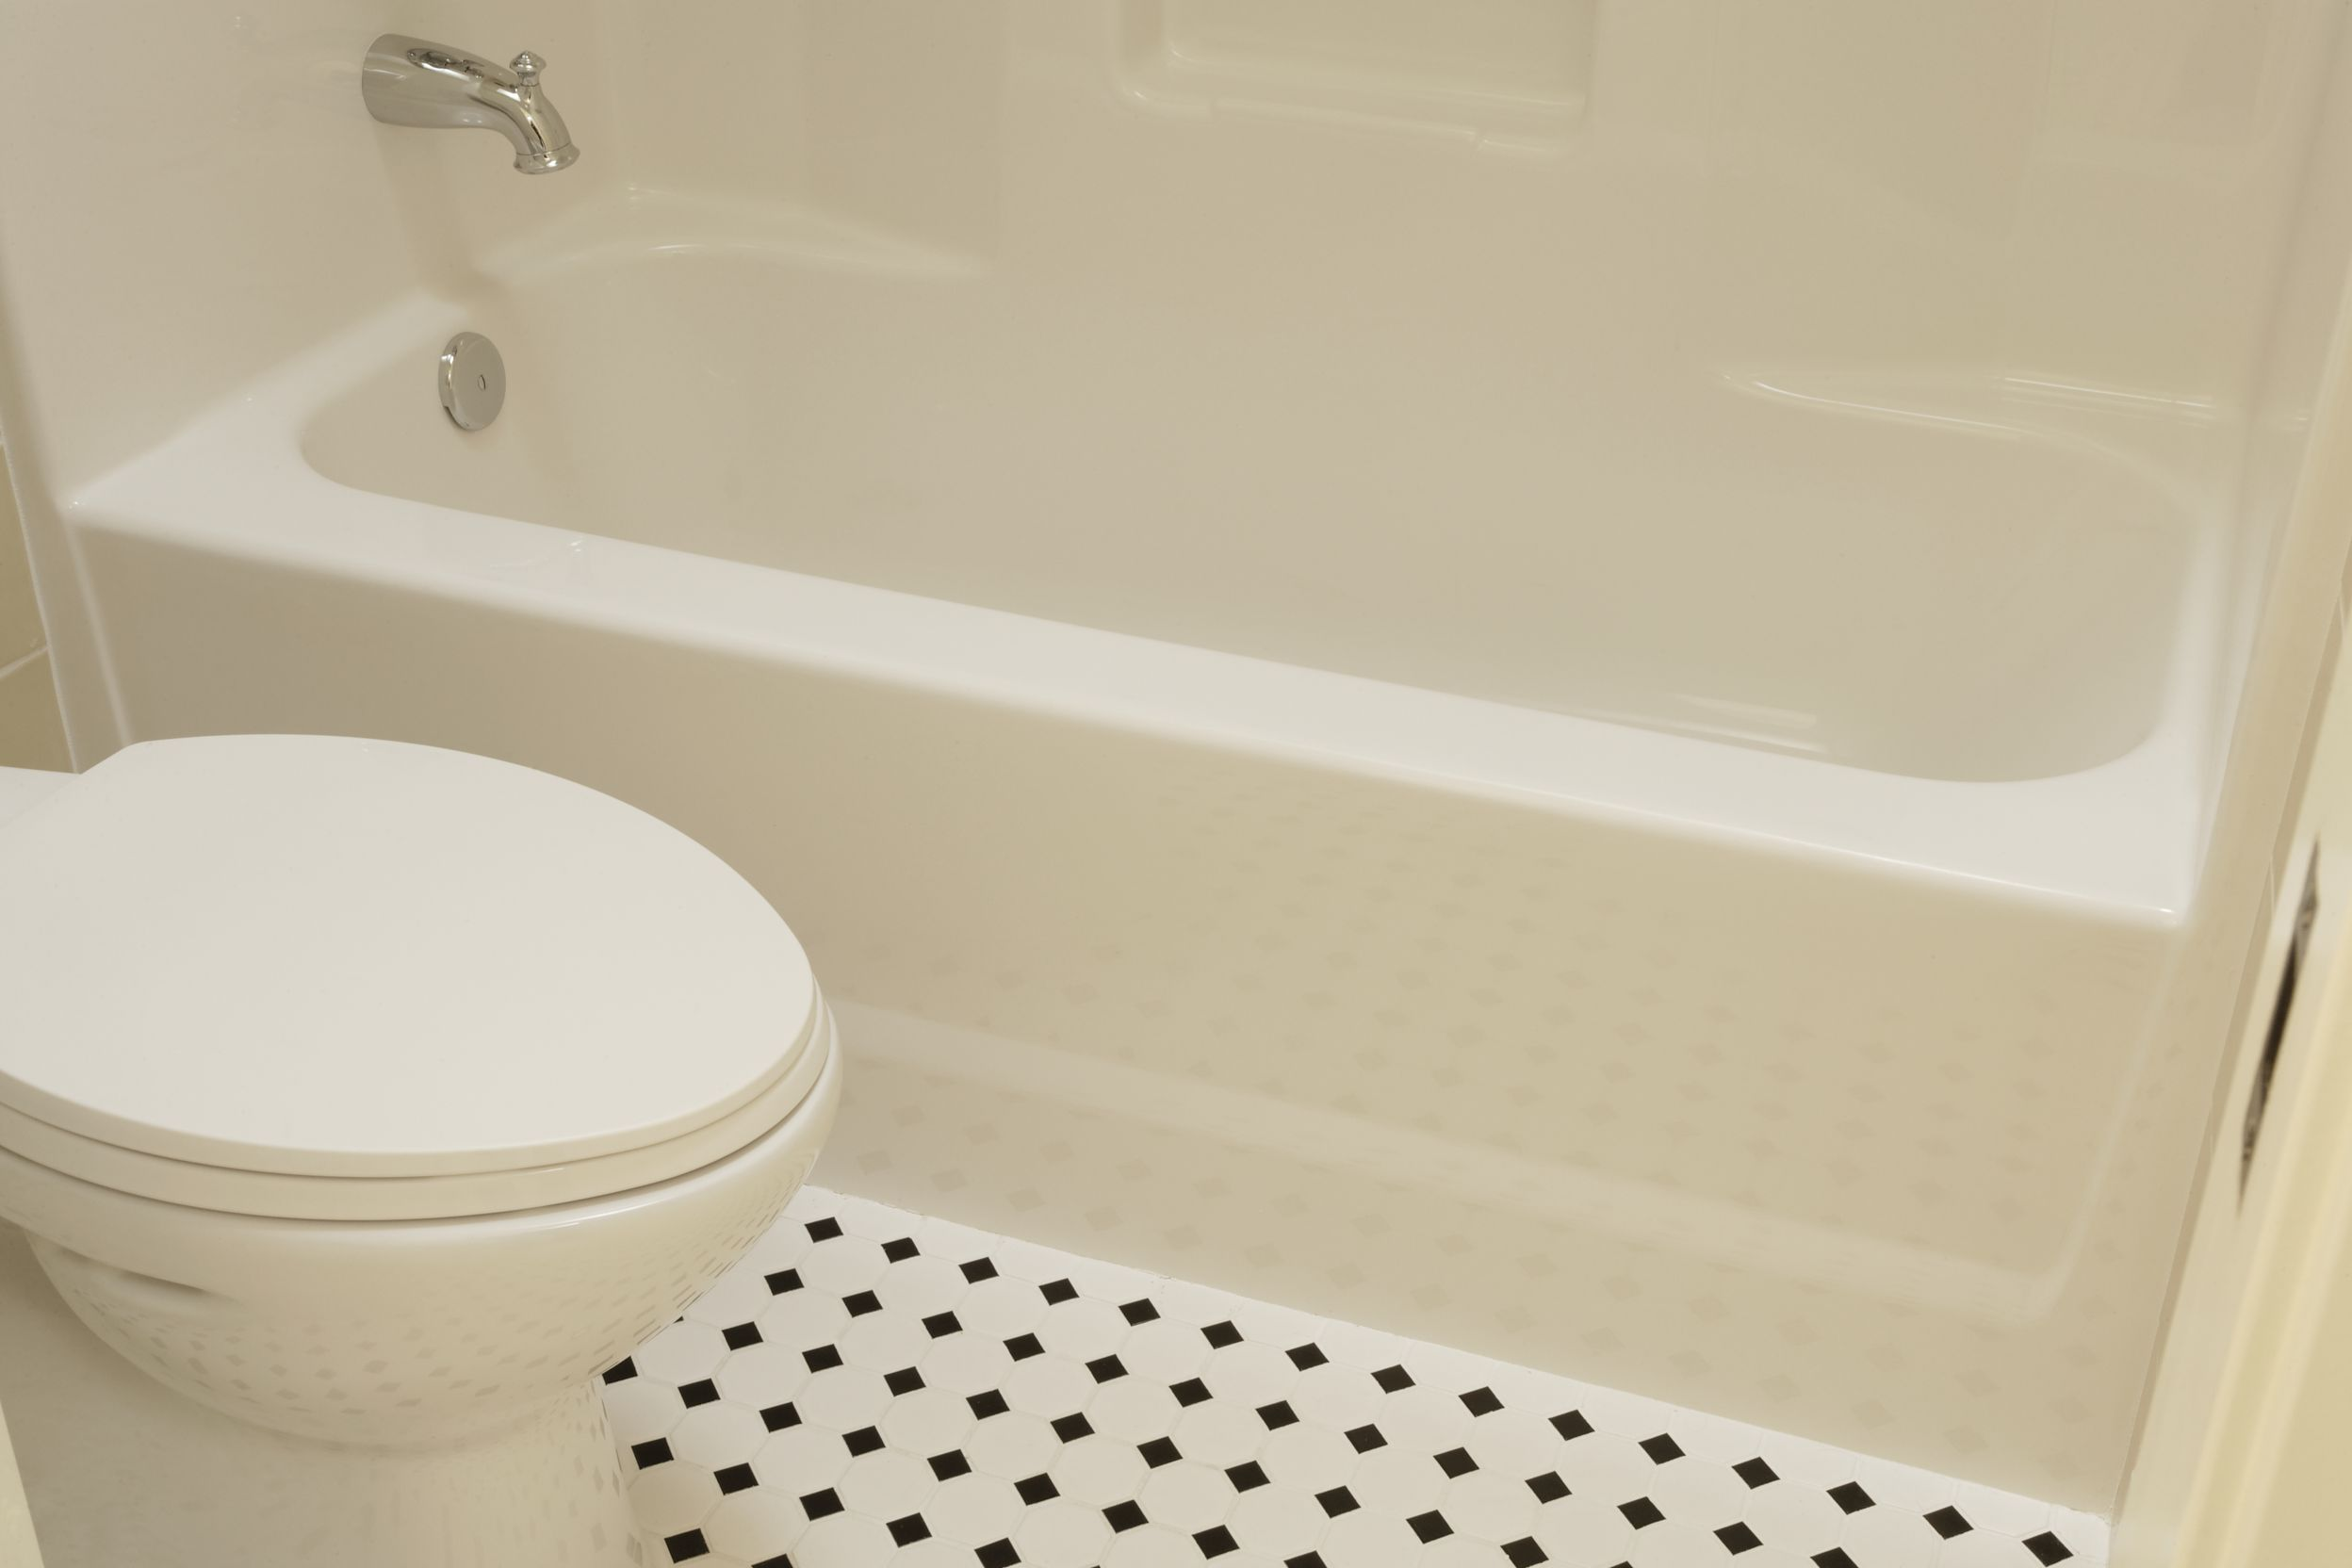 Fiberglass - Bathtubs & Showers